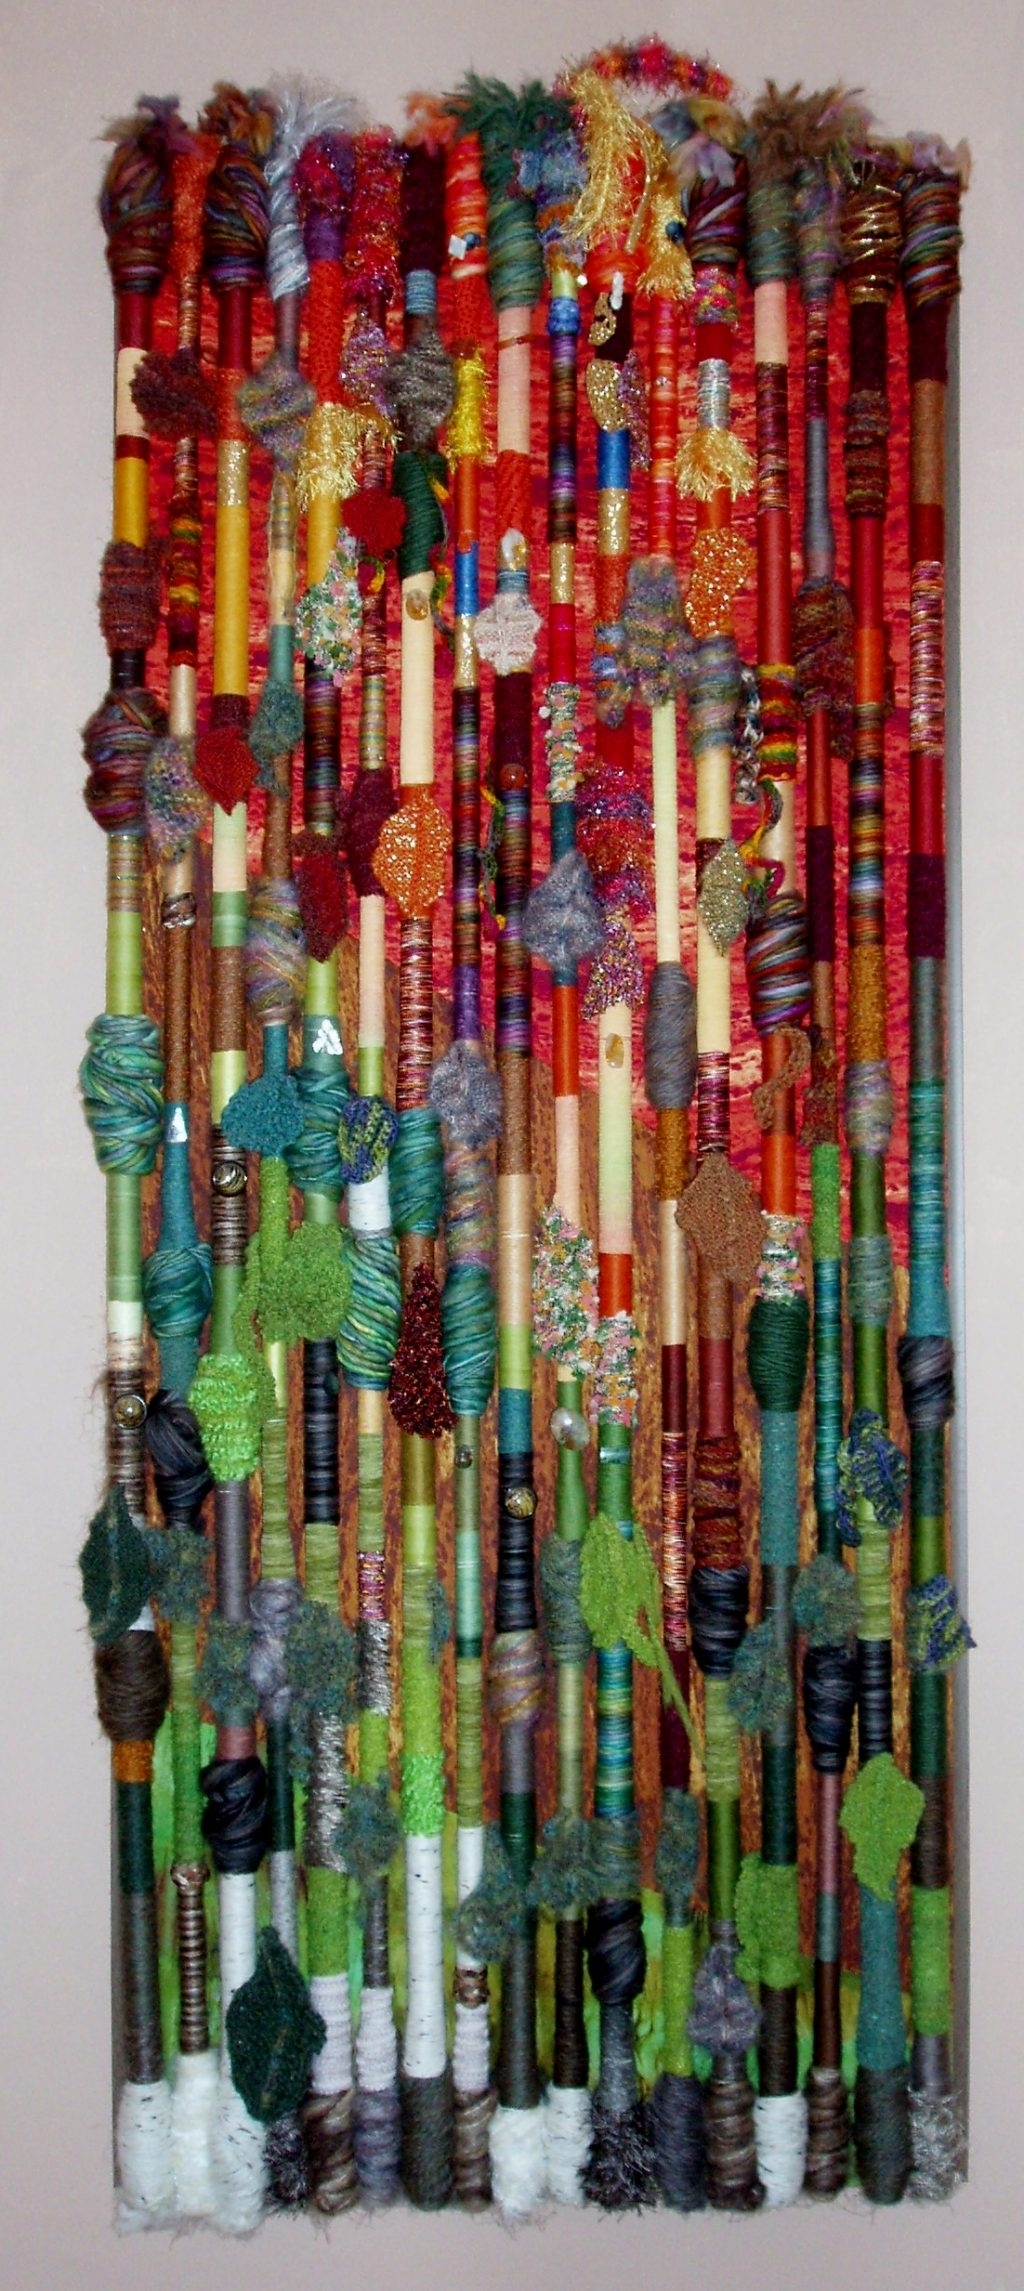 Inspirational Design Ideas Textile Wall Hangings With Fiber Art Intended For 2018 Fabric Wall Hangings Art (Gallery 4 of 15)